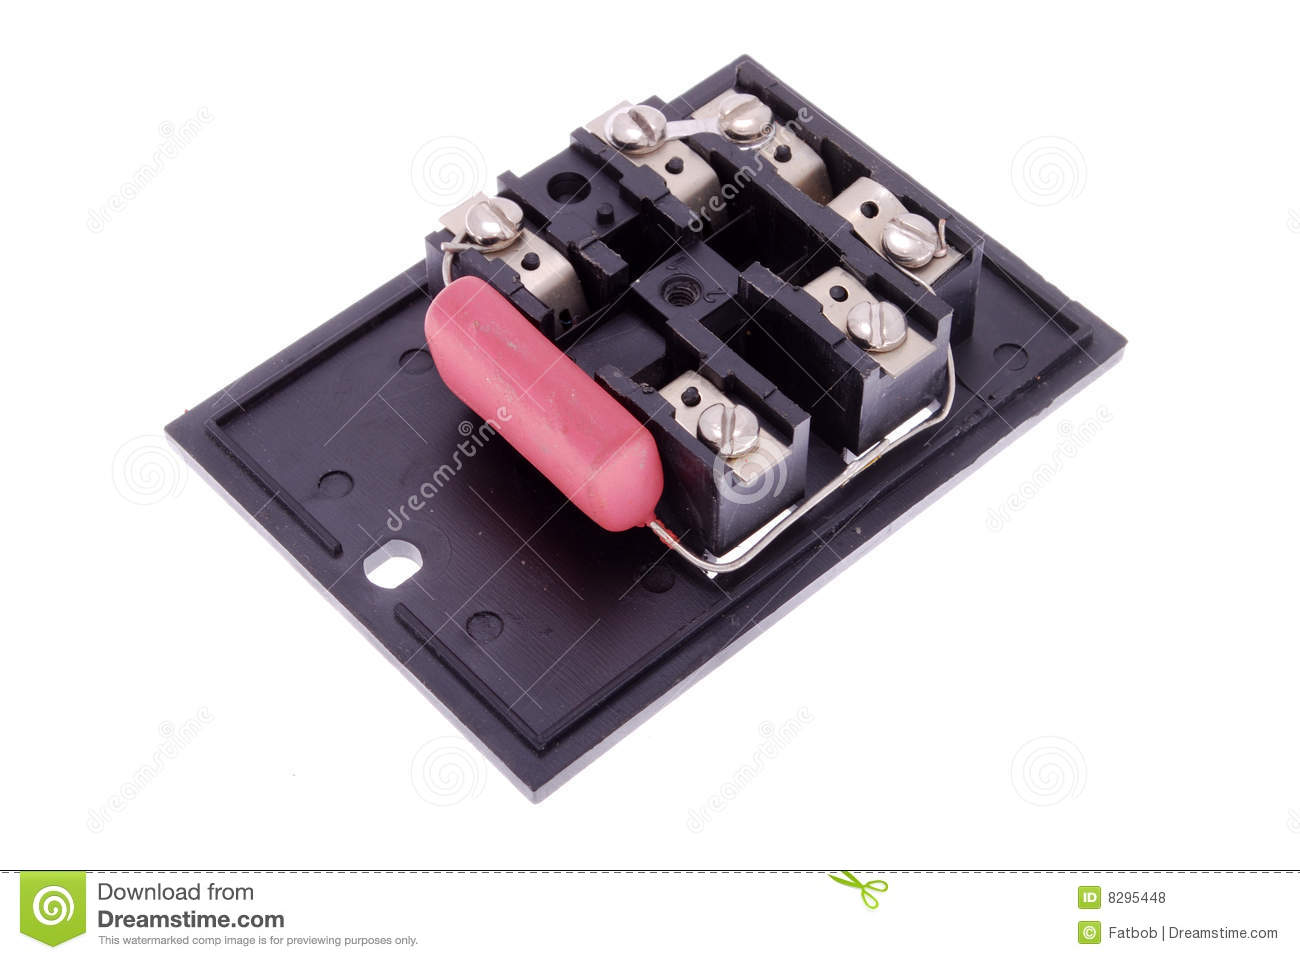 how to change a telephone socket